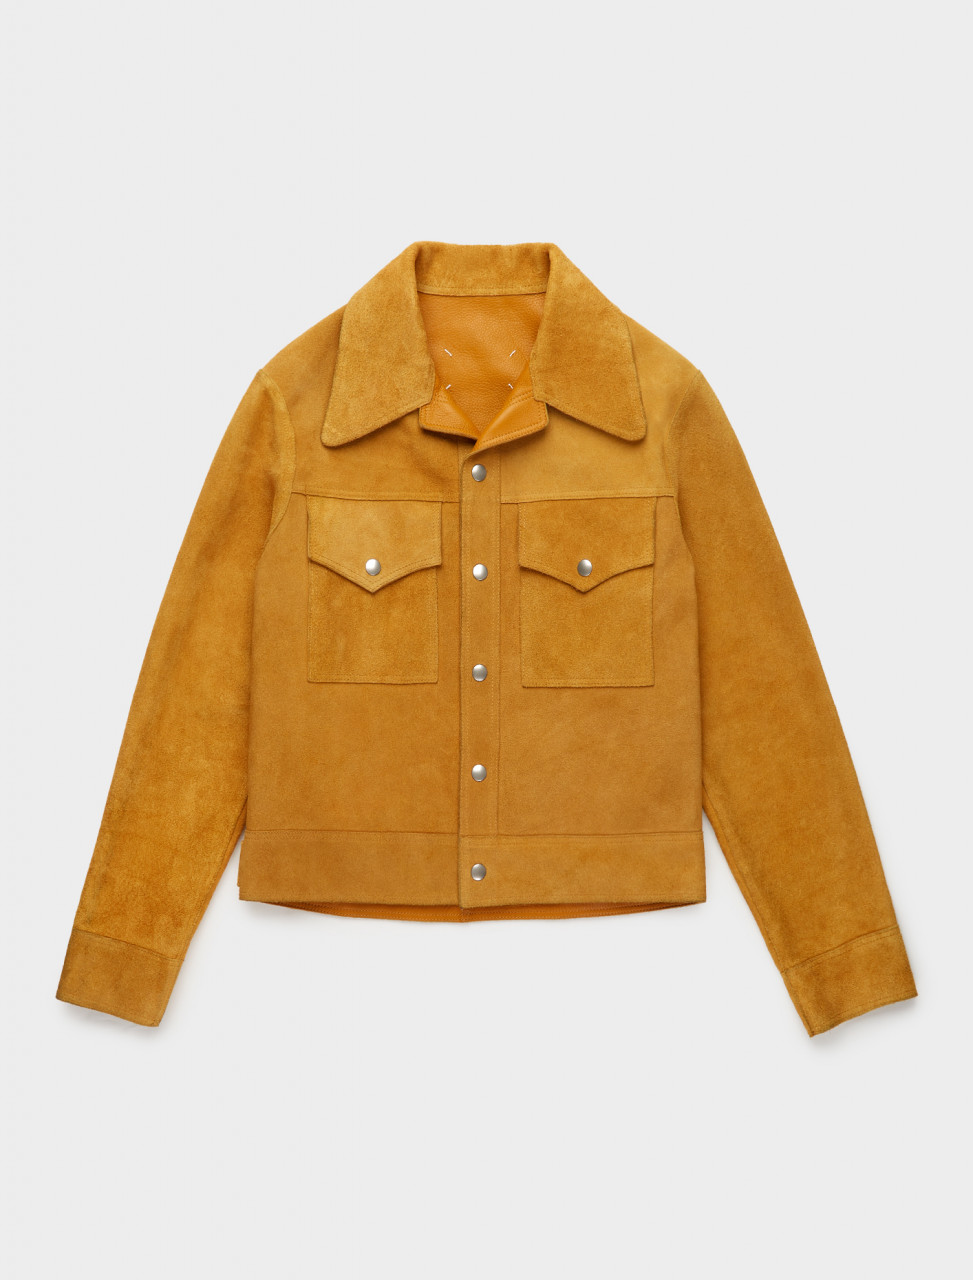 256-S30AM0526-SY1532-165 MAISON MARGIELA REVERSIBLE SUEDE JACKET YELLOW